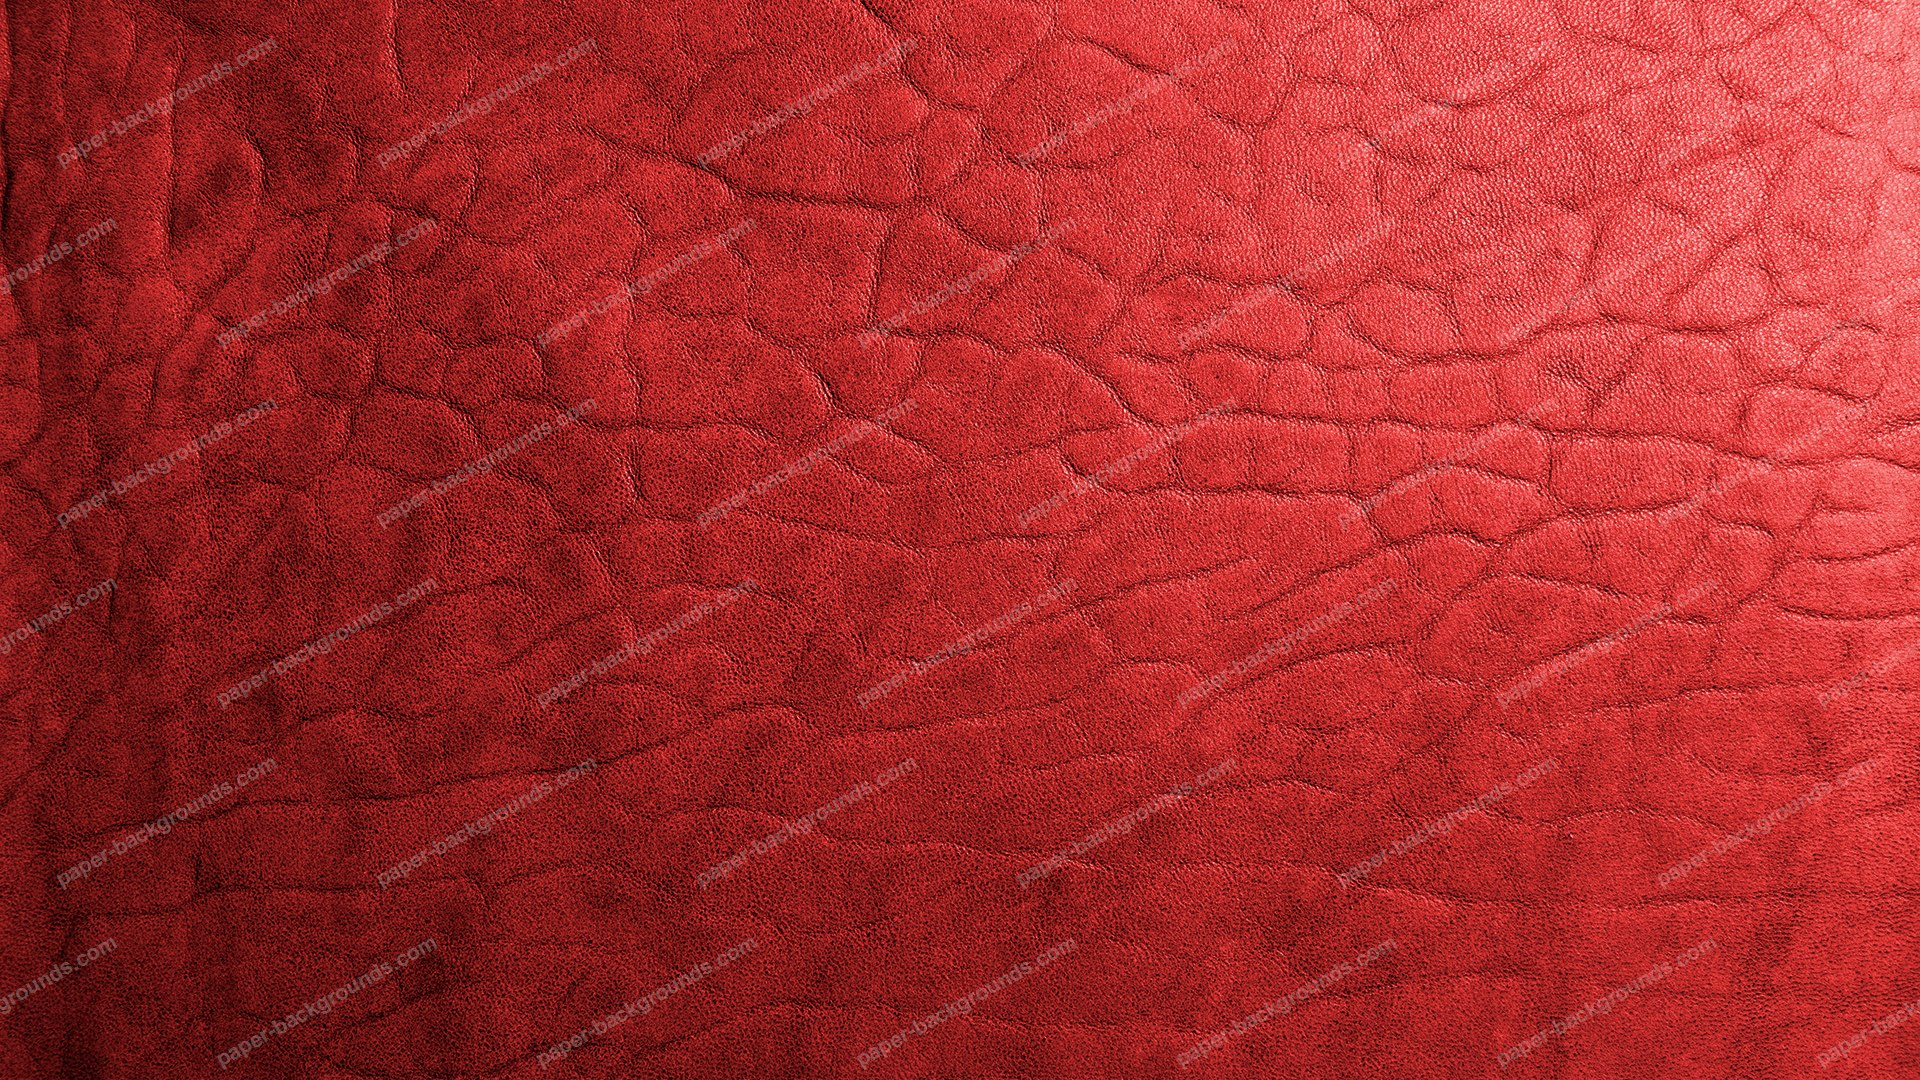 Red Leather Texture Background2 HD 1920 x 1080p